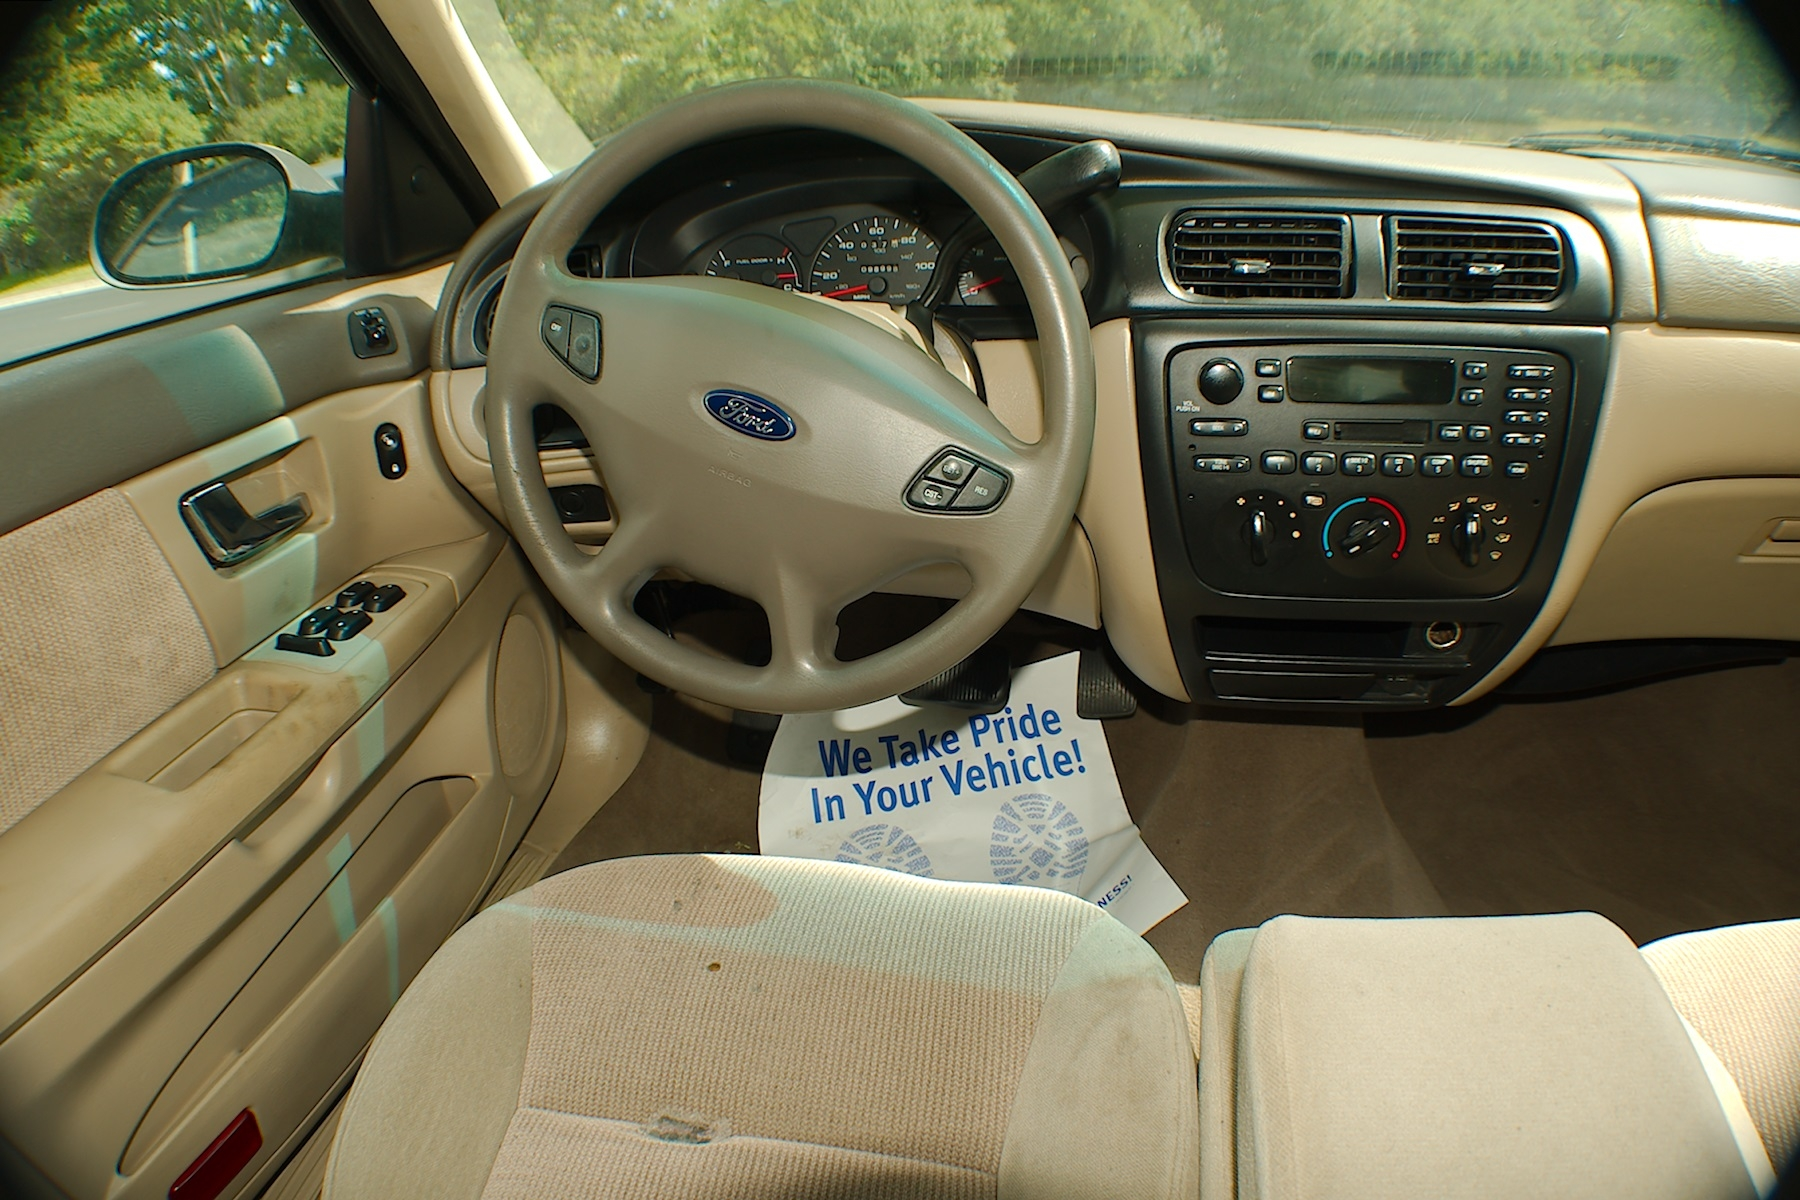 2001 Ford Taurus Sand Sedan Used Car Sale Green Oaks Hainesville Hawthorne Woods